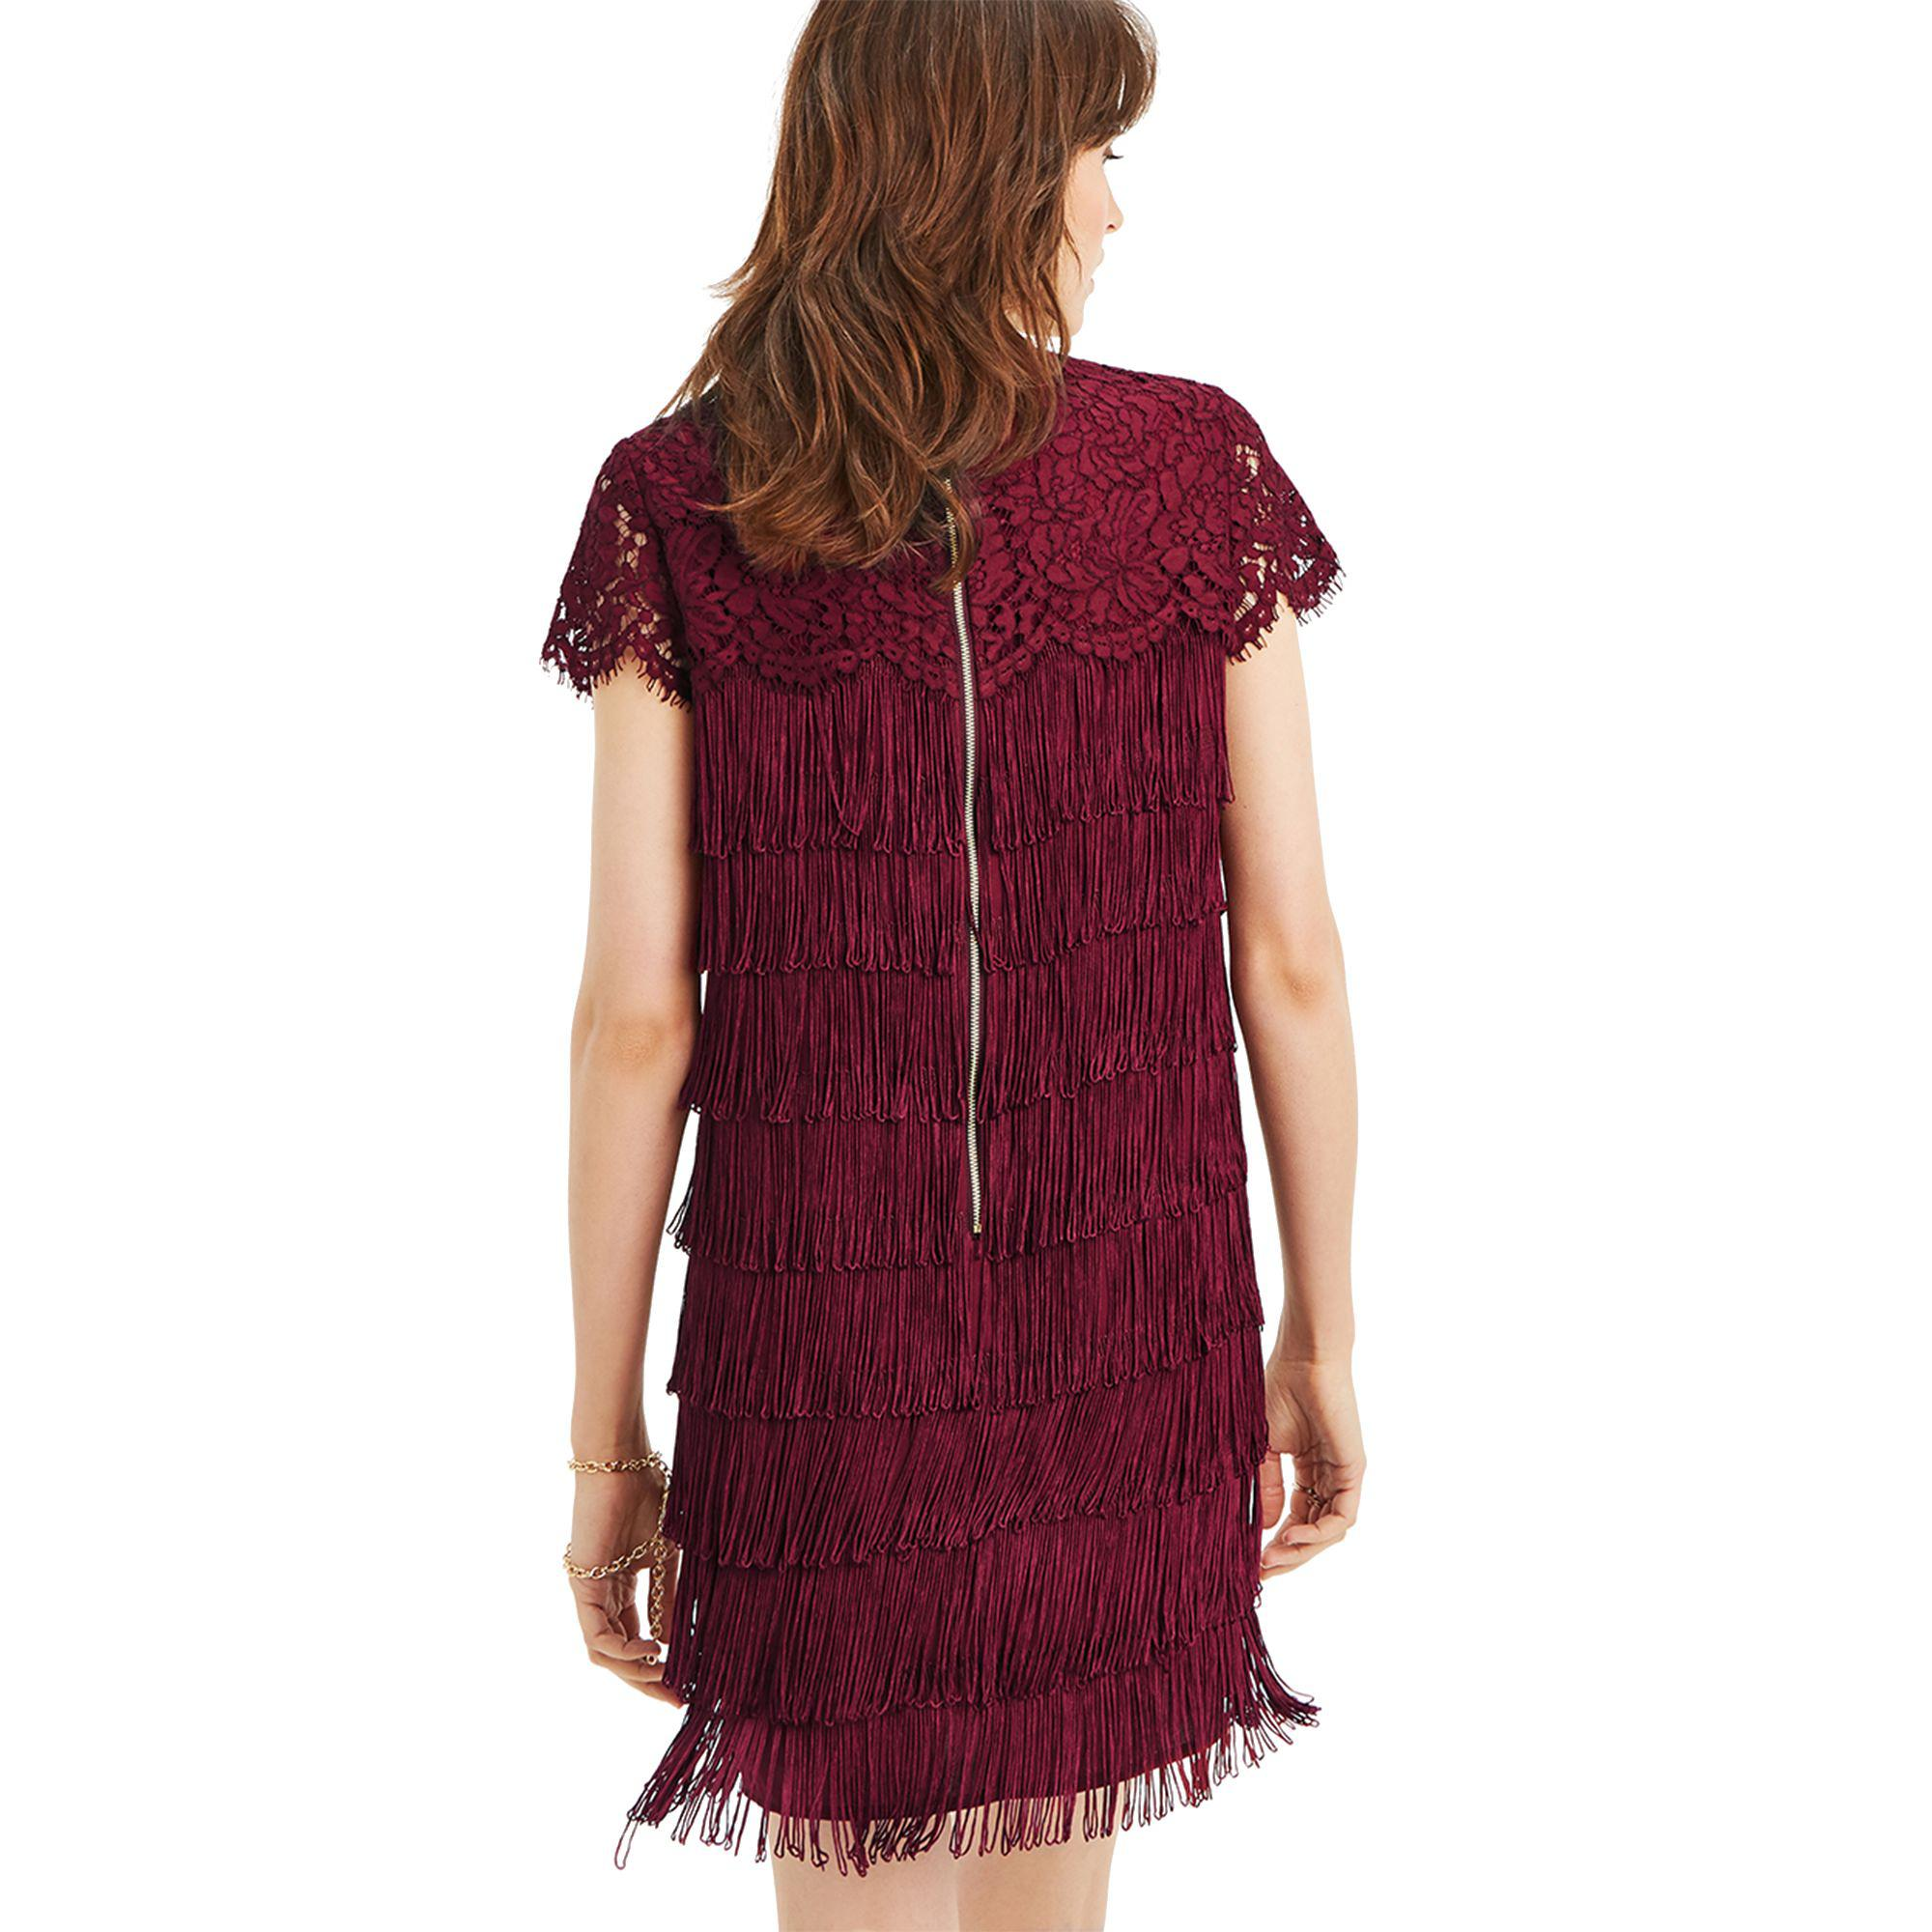 f91a77a280f1 Oasis Burgundy Lace And Fringe Shift Dress in Red - Lyst